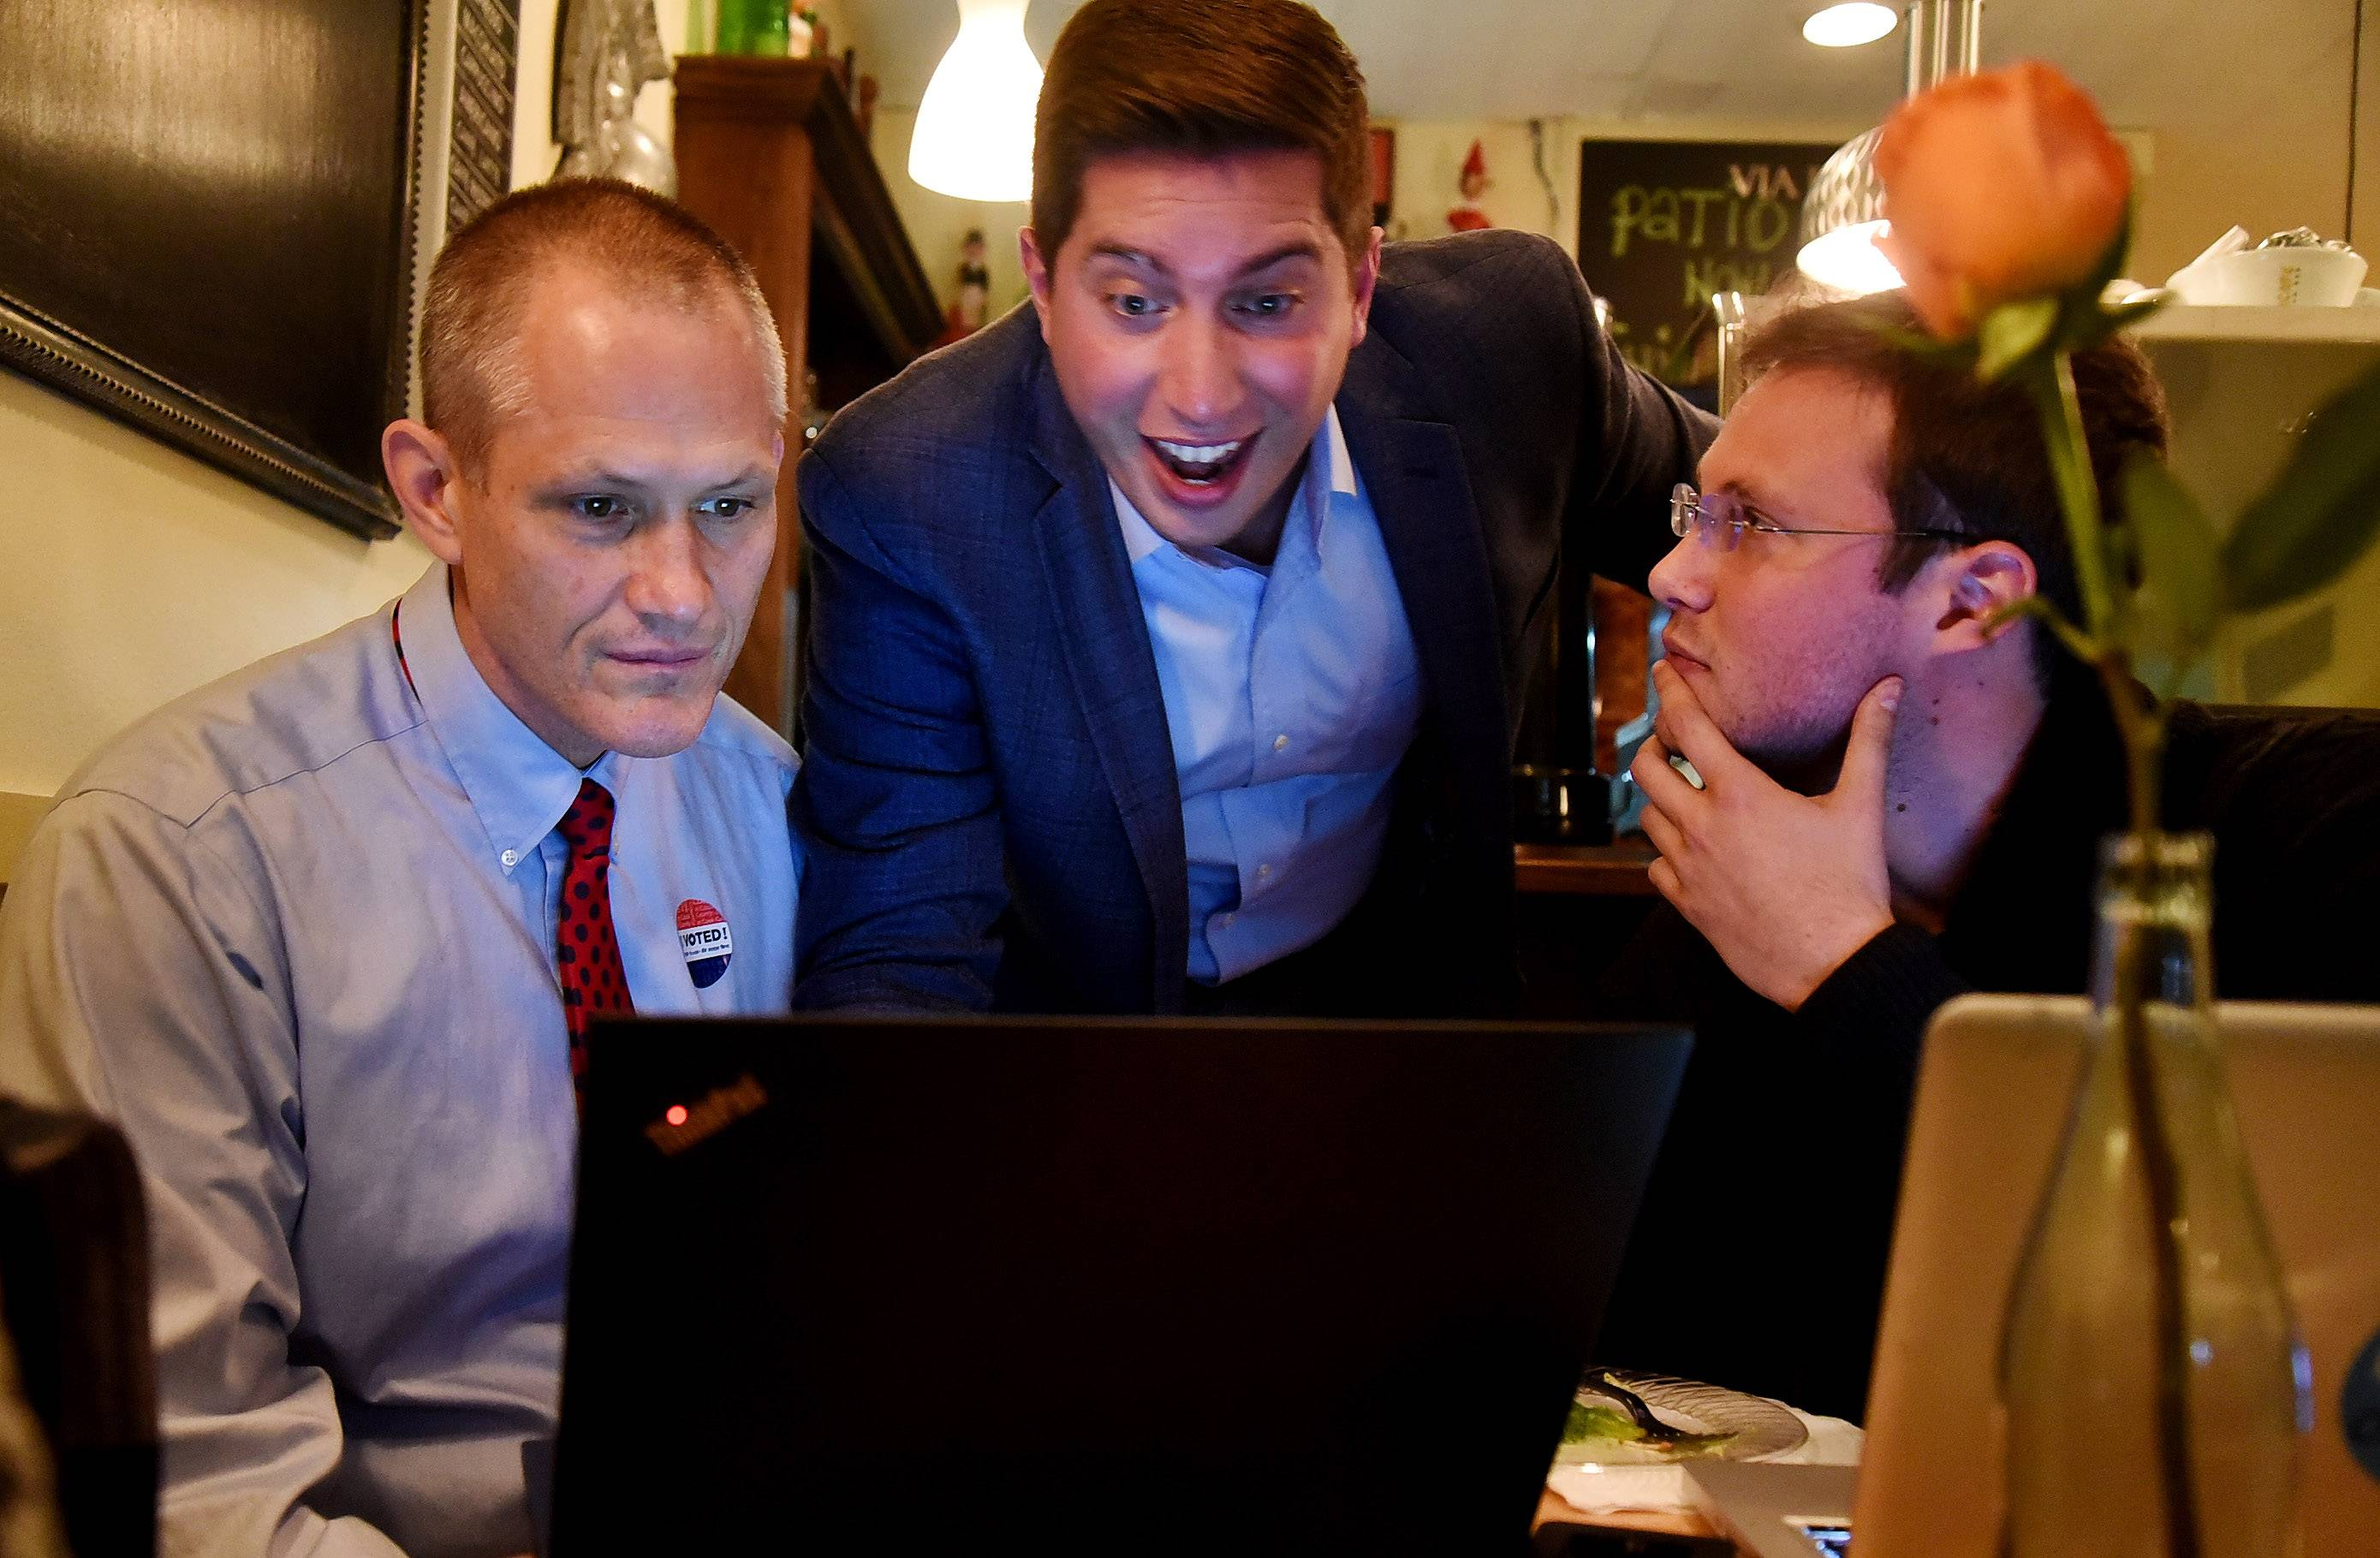 Des Plaines Mayor Matt Bogusz, along with campaign volunteer Tom Stettner, left, and campaign manager Matt Luchins look at their winning results at the Via Roma restaurant in Des Plaines.